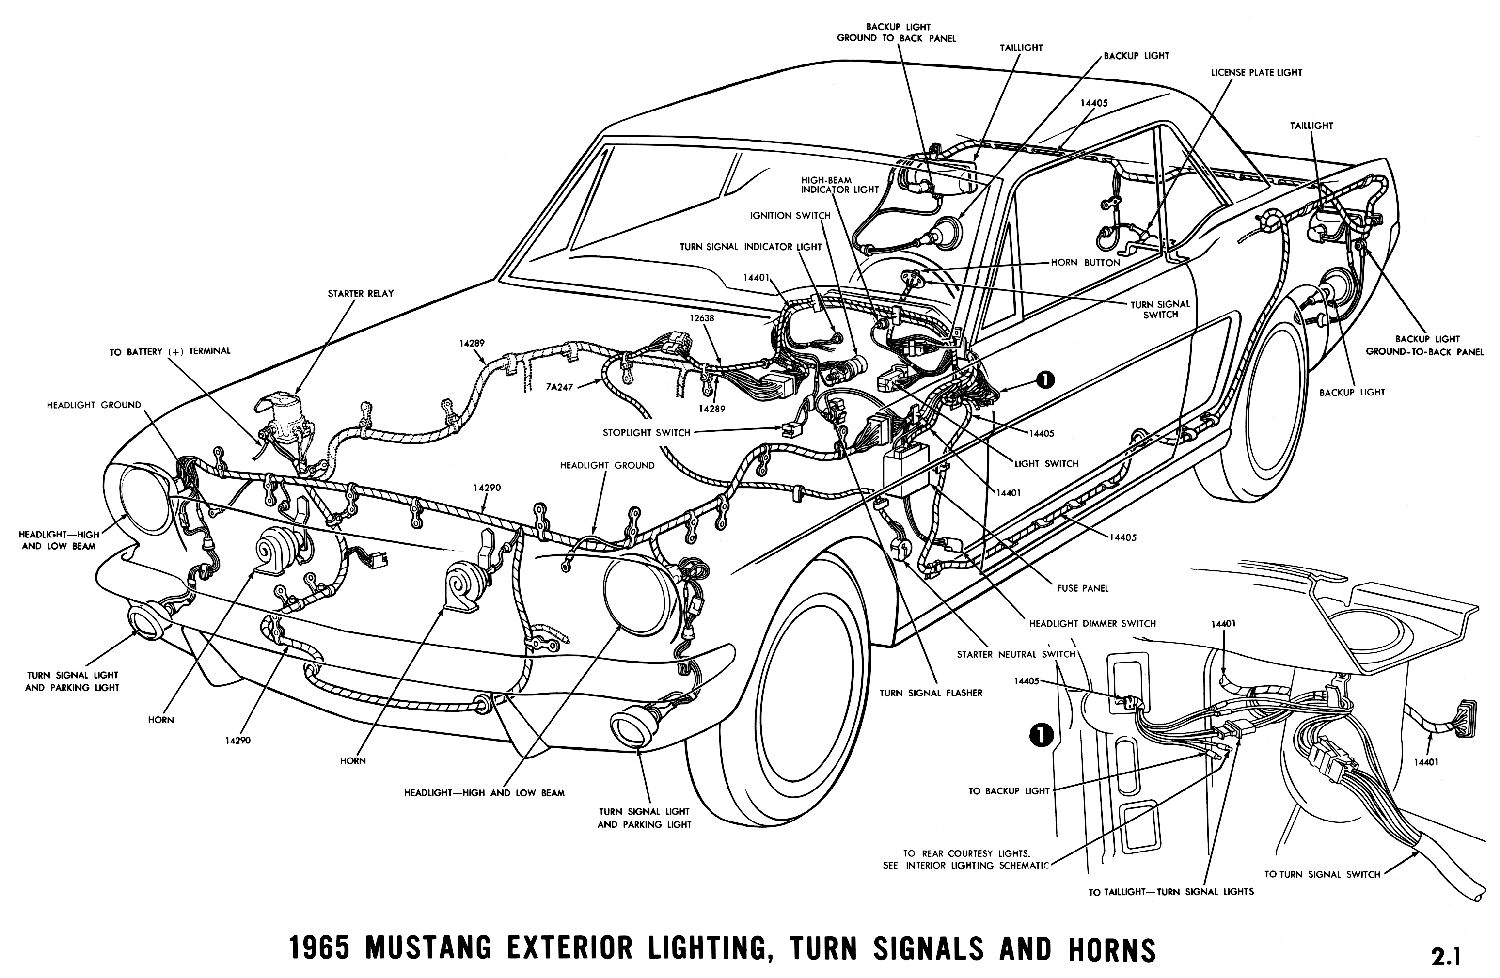 1965d 1965 mustang wiring diagrams average joe restoration 68 Mustang Wiring Diagram at webbmarketing.co